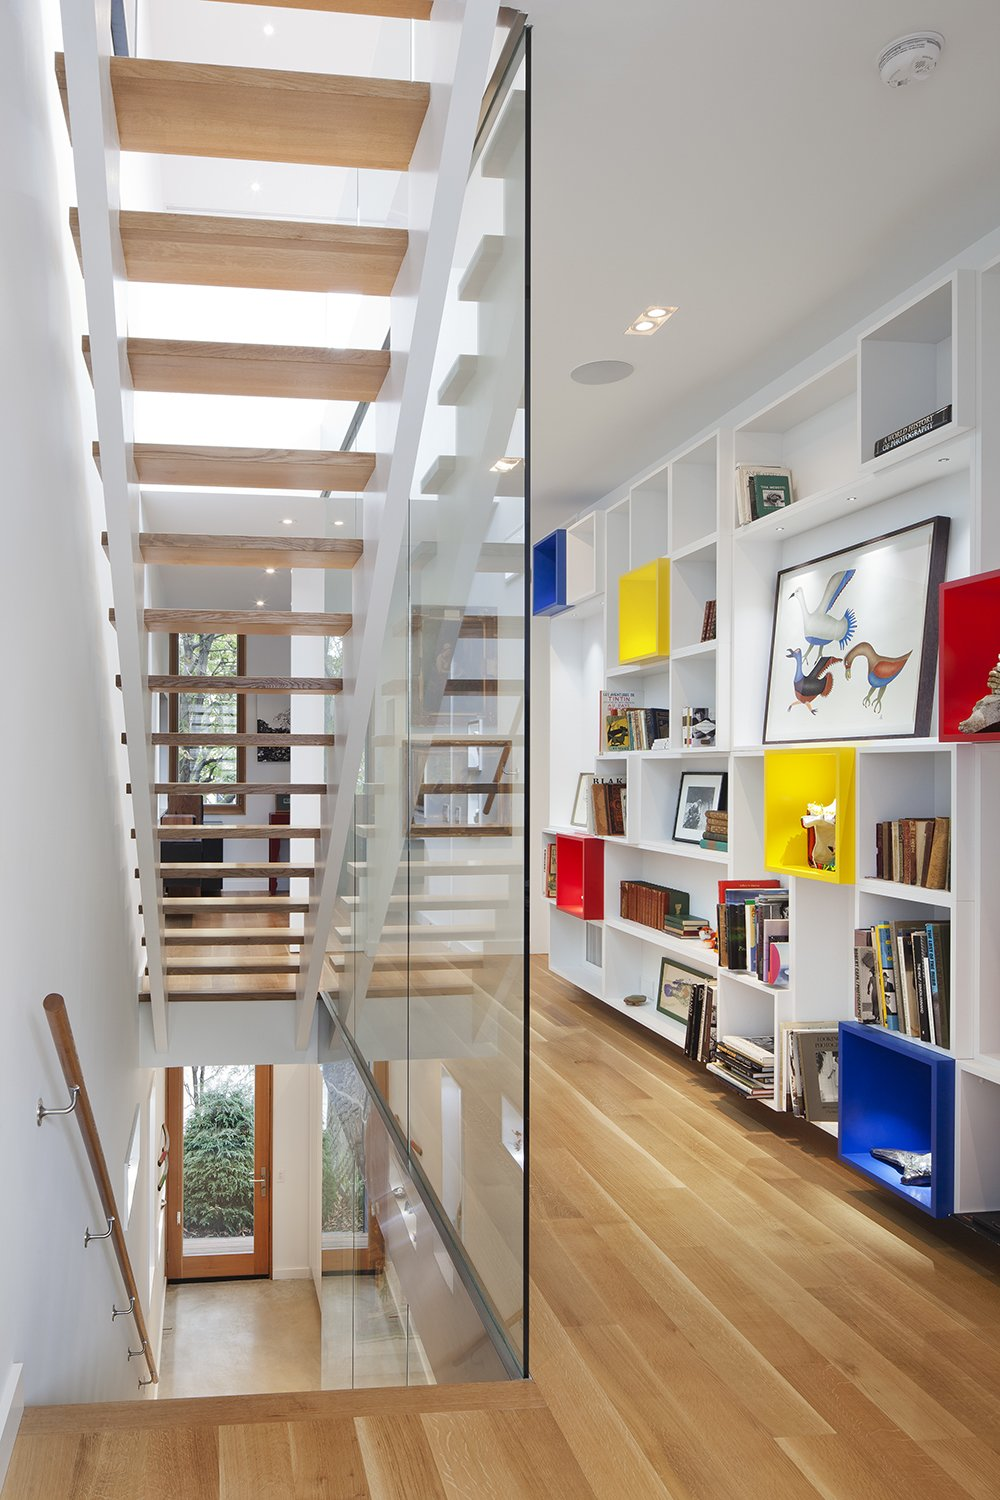 """""""The interior was designed as a backdrop to the art and life of its inhabitants,"""" Clarkson noted. """"A custom-built wall of display cubes adds an accent of primary color in the second floor hallway."""" Solid white oak flooring continues onto the second level from the stairs, and Middlebrook Woodworking Ltd. lacquered that same material for the display cubes.  King West by Kelly Dawson"""